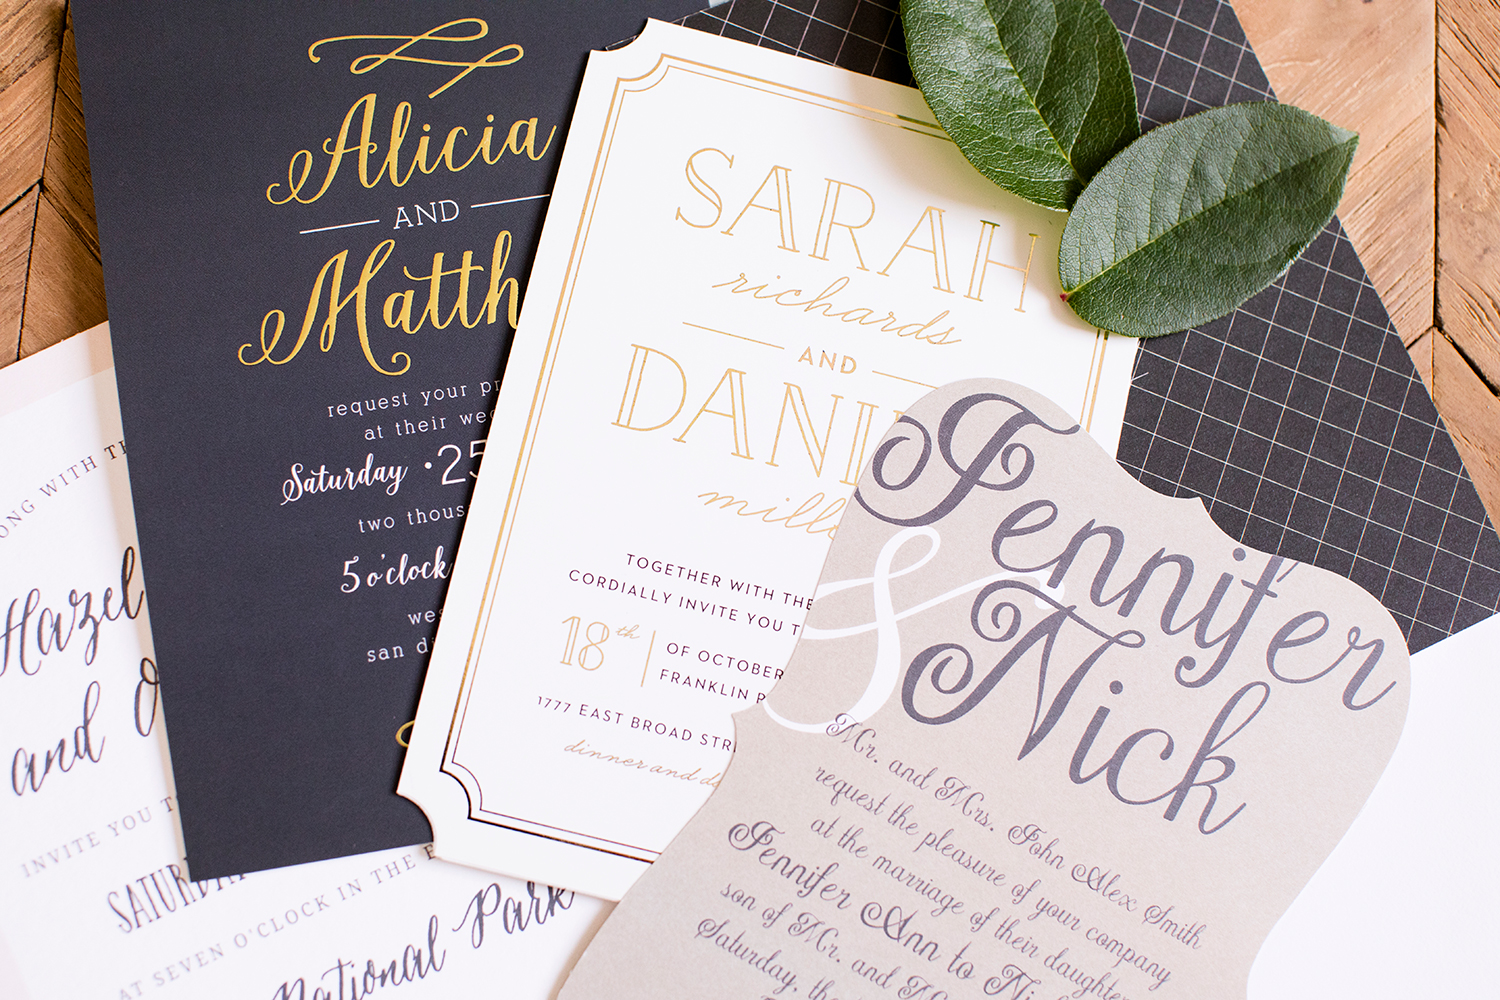 Best Online Wedding Invitations and Stationery Basic Invite online wedding invitations Best Online Wedding Invitations Image Property of www j dphoto com